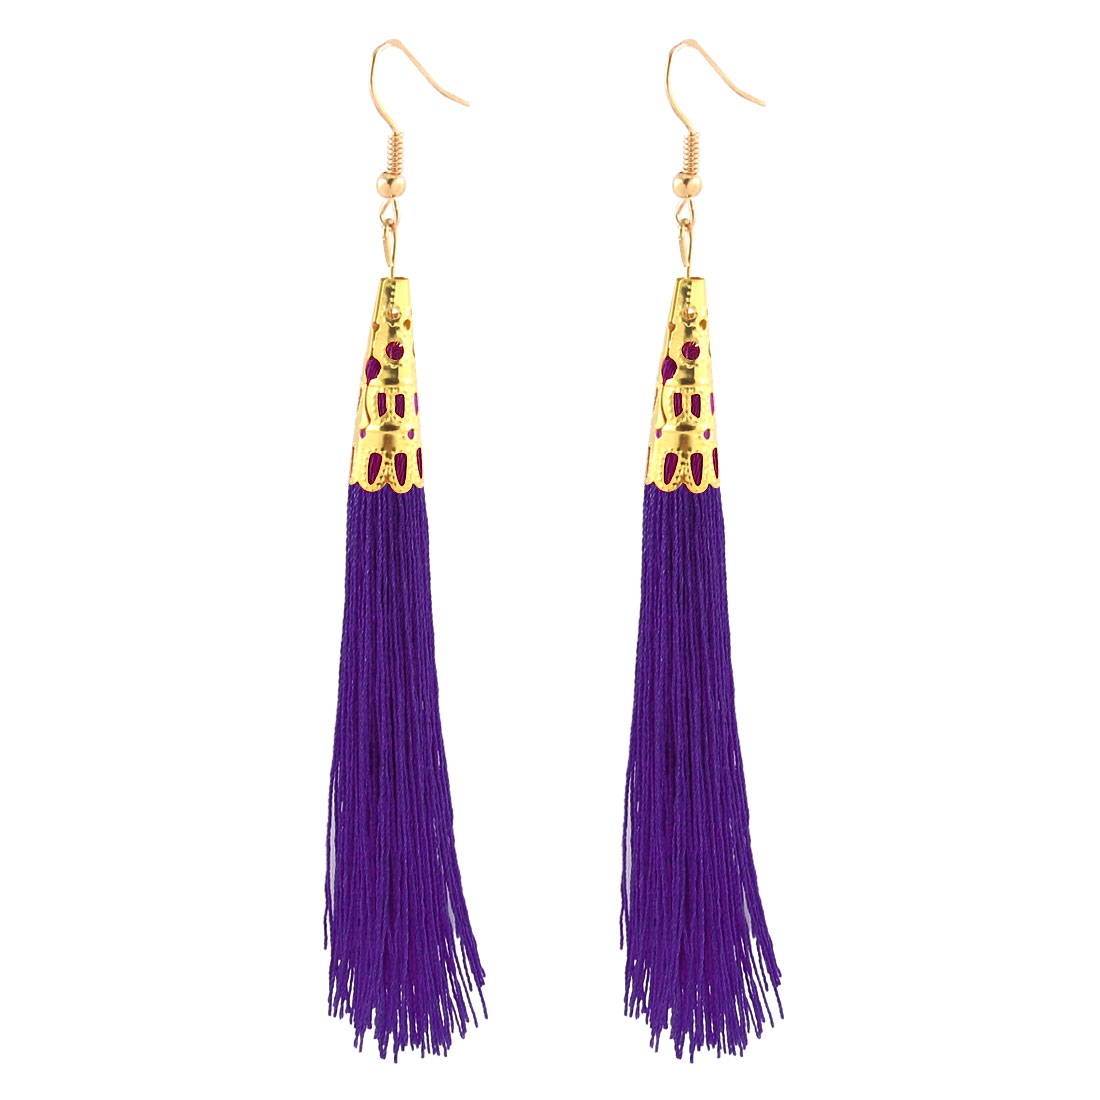 Lady Long Tassel Dangle Hook Earrings Charm Hanging Ornament Pair Purple